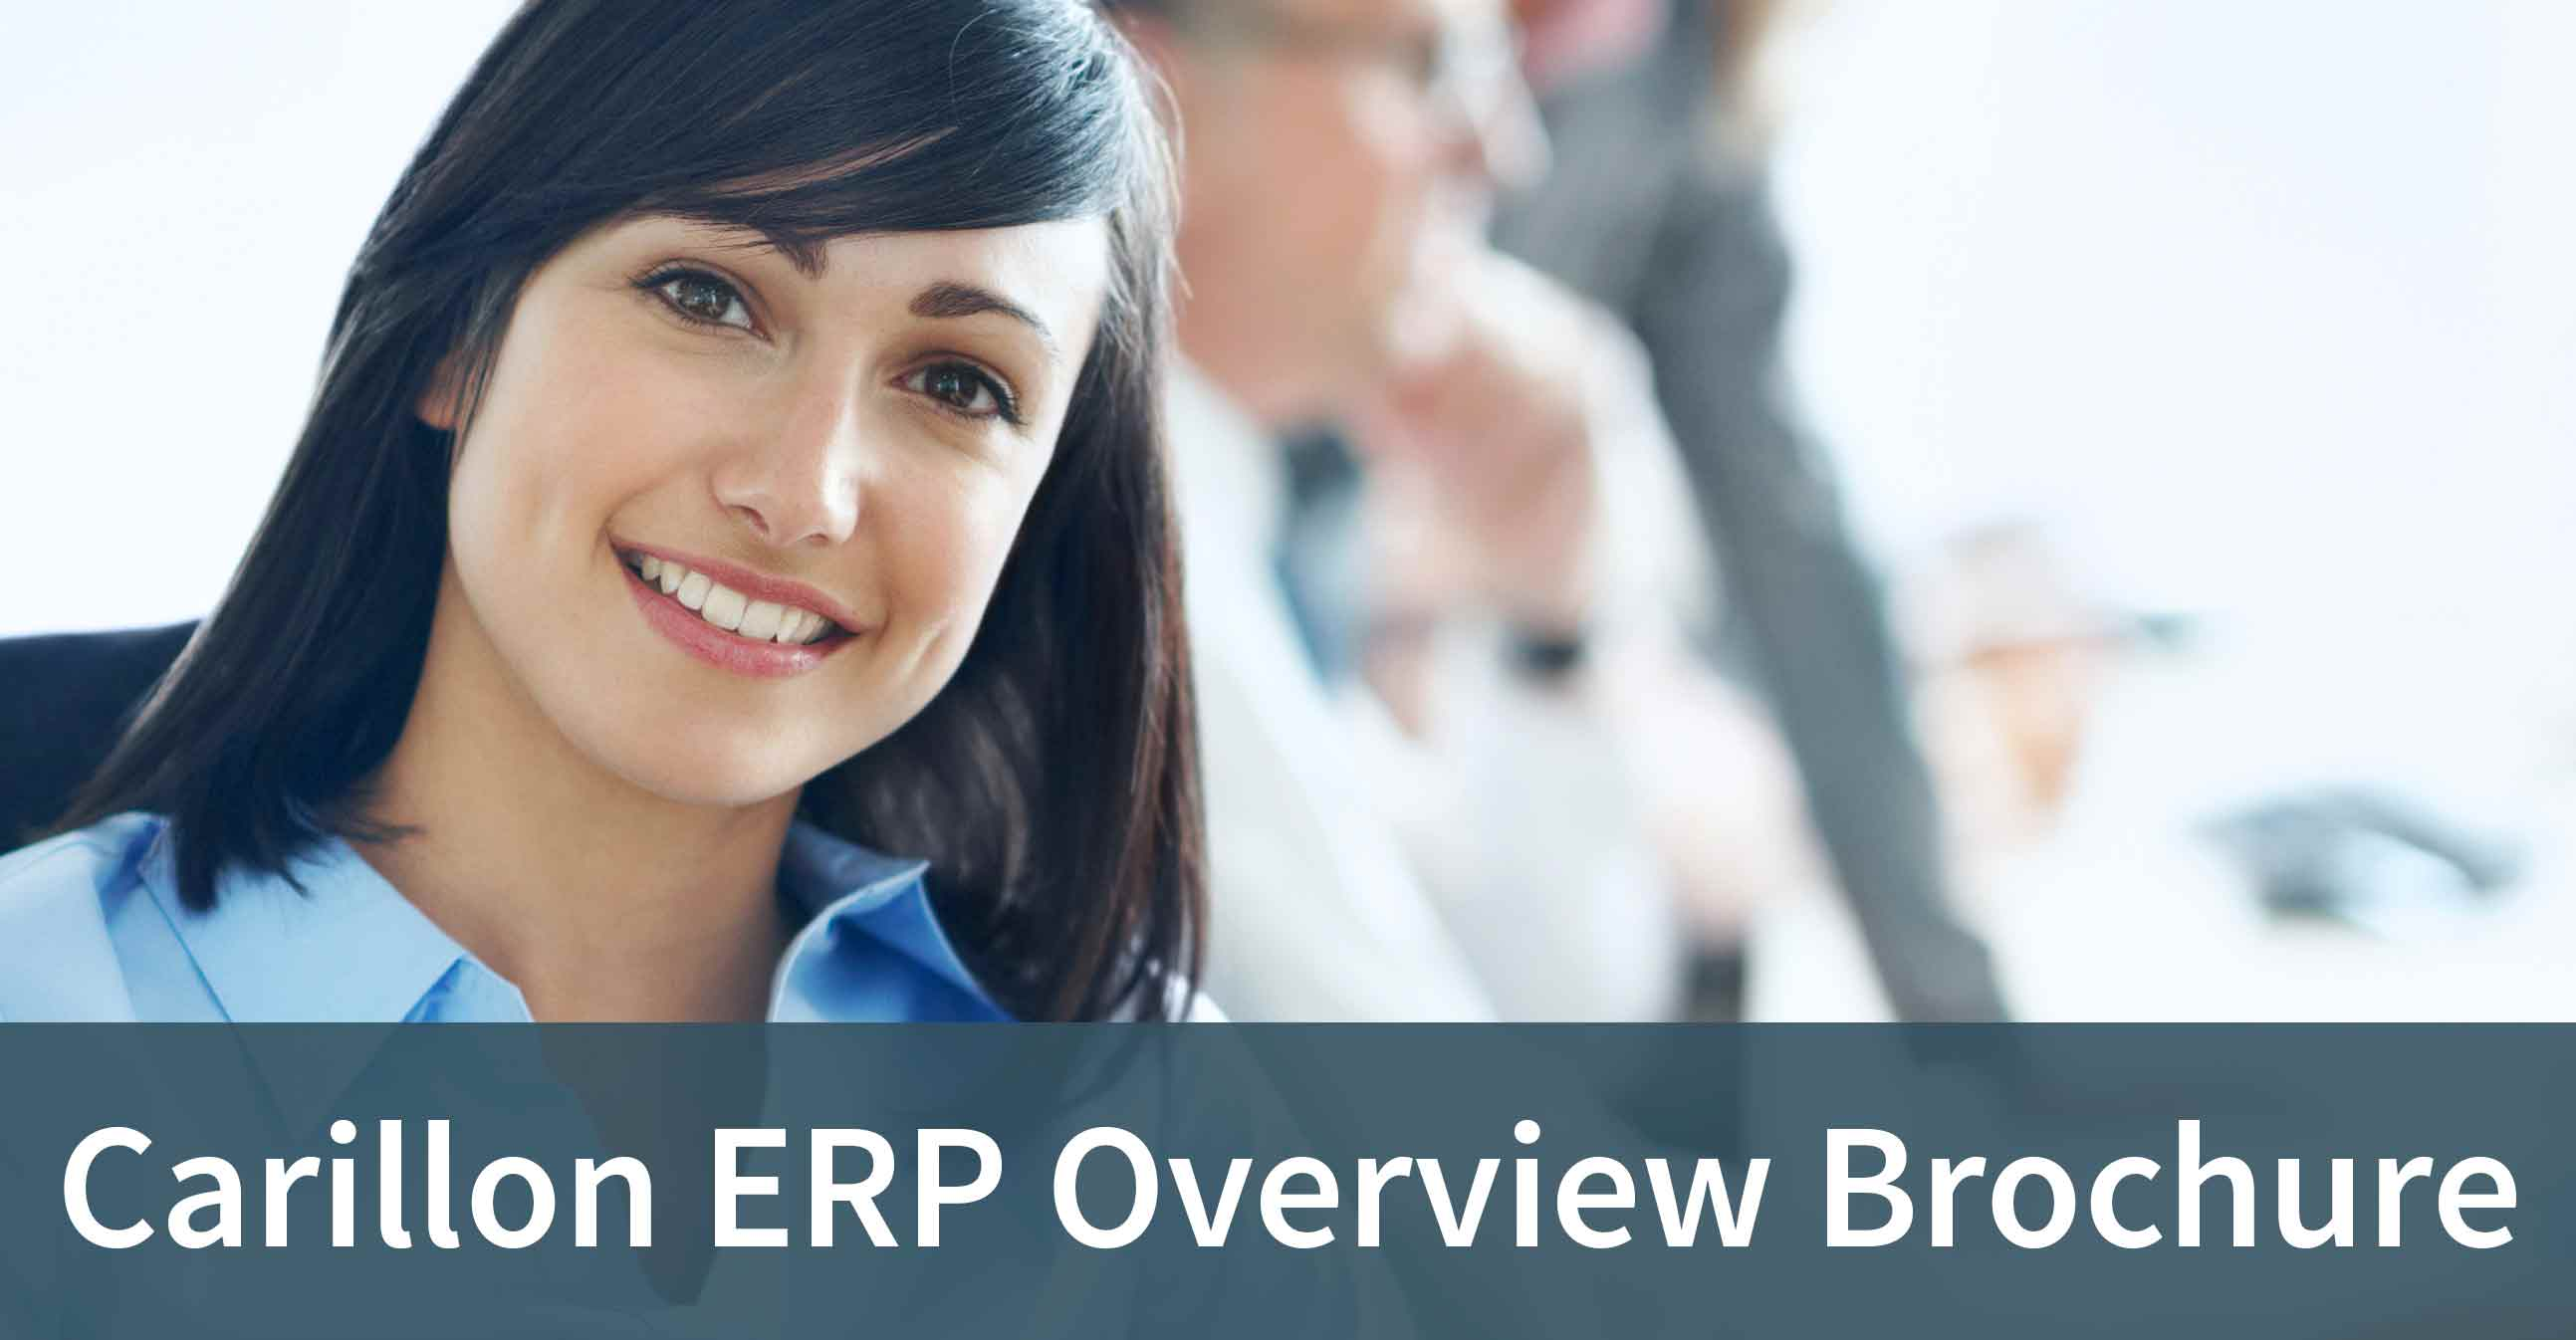 Carillon ERP Overview Brochure